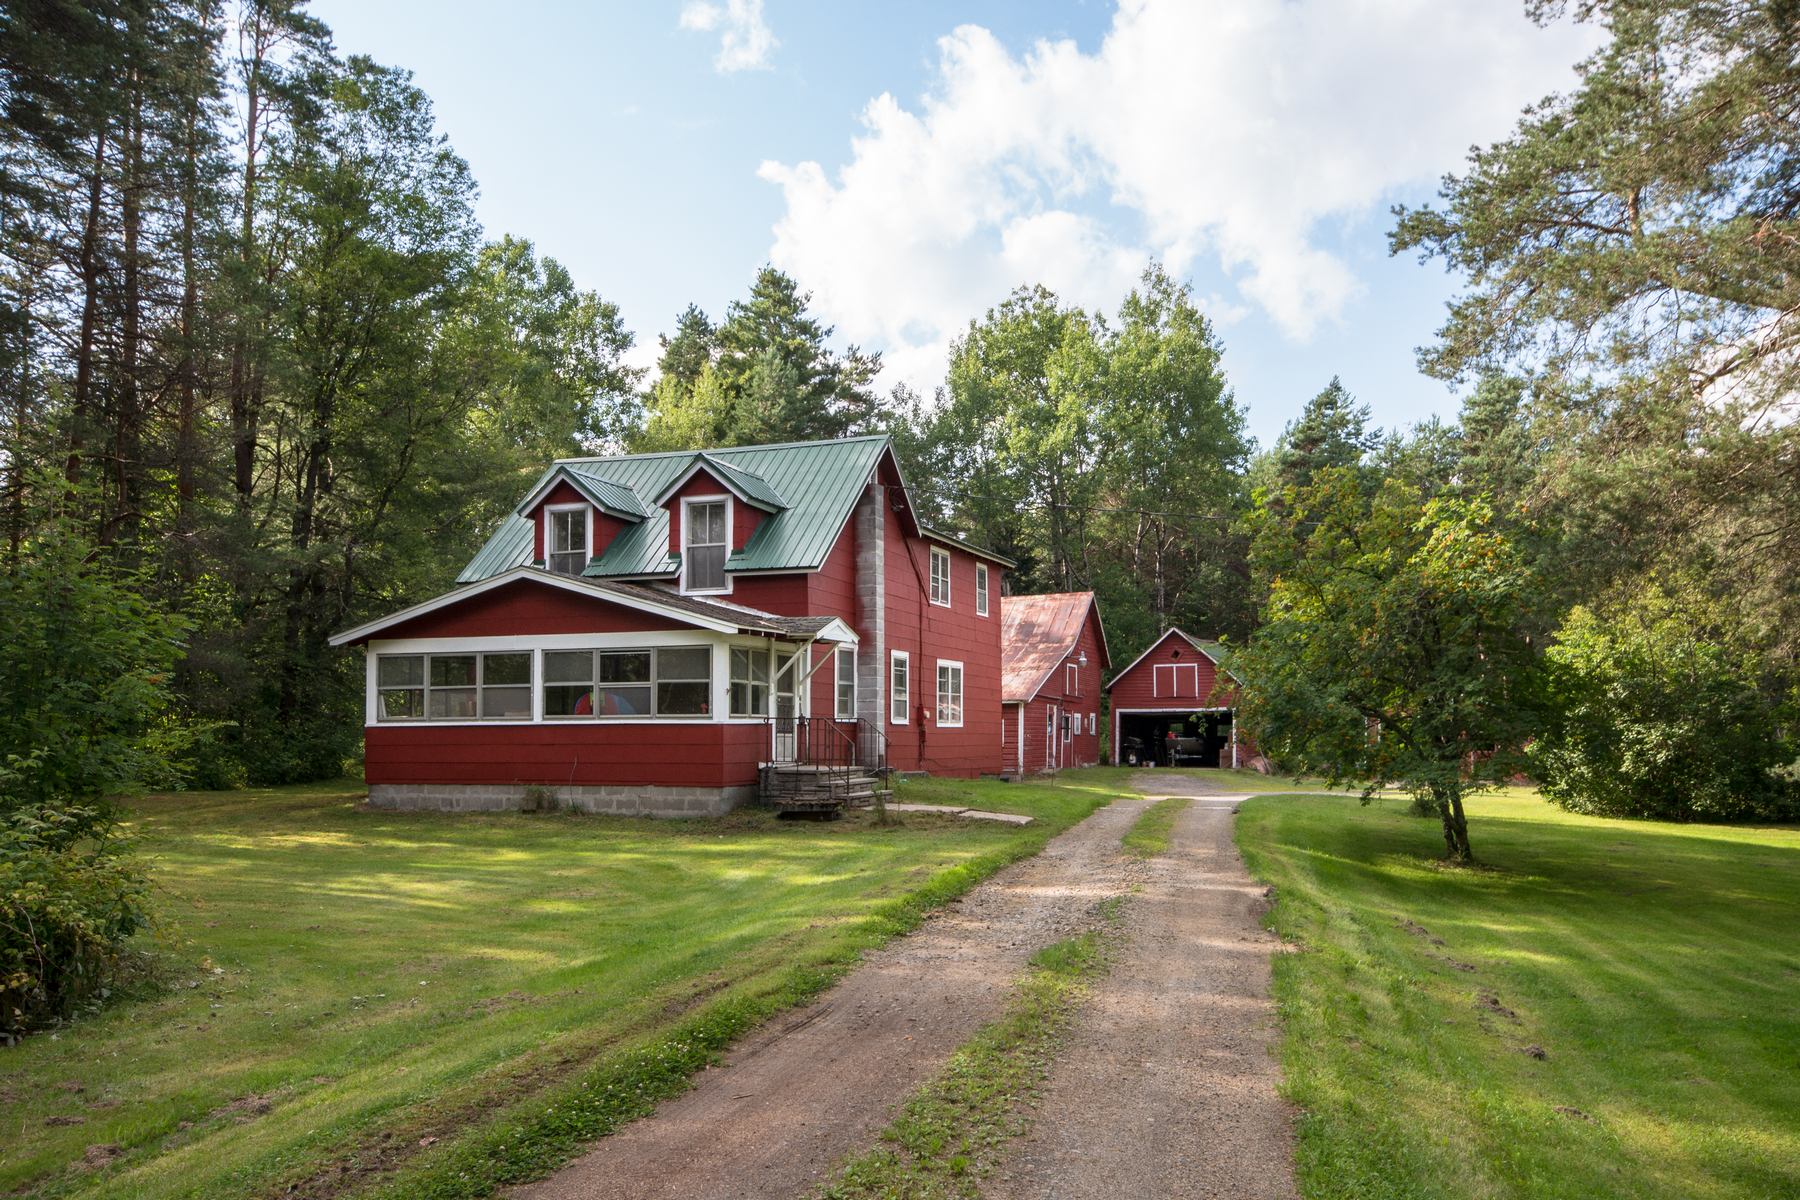 Single Family Home for Sale at Great Farmhouse on 3 Acres 401 State Route 186, Saranac Lake, New York, 12983 United States